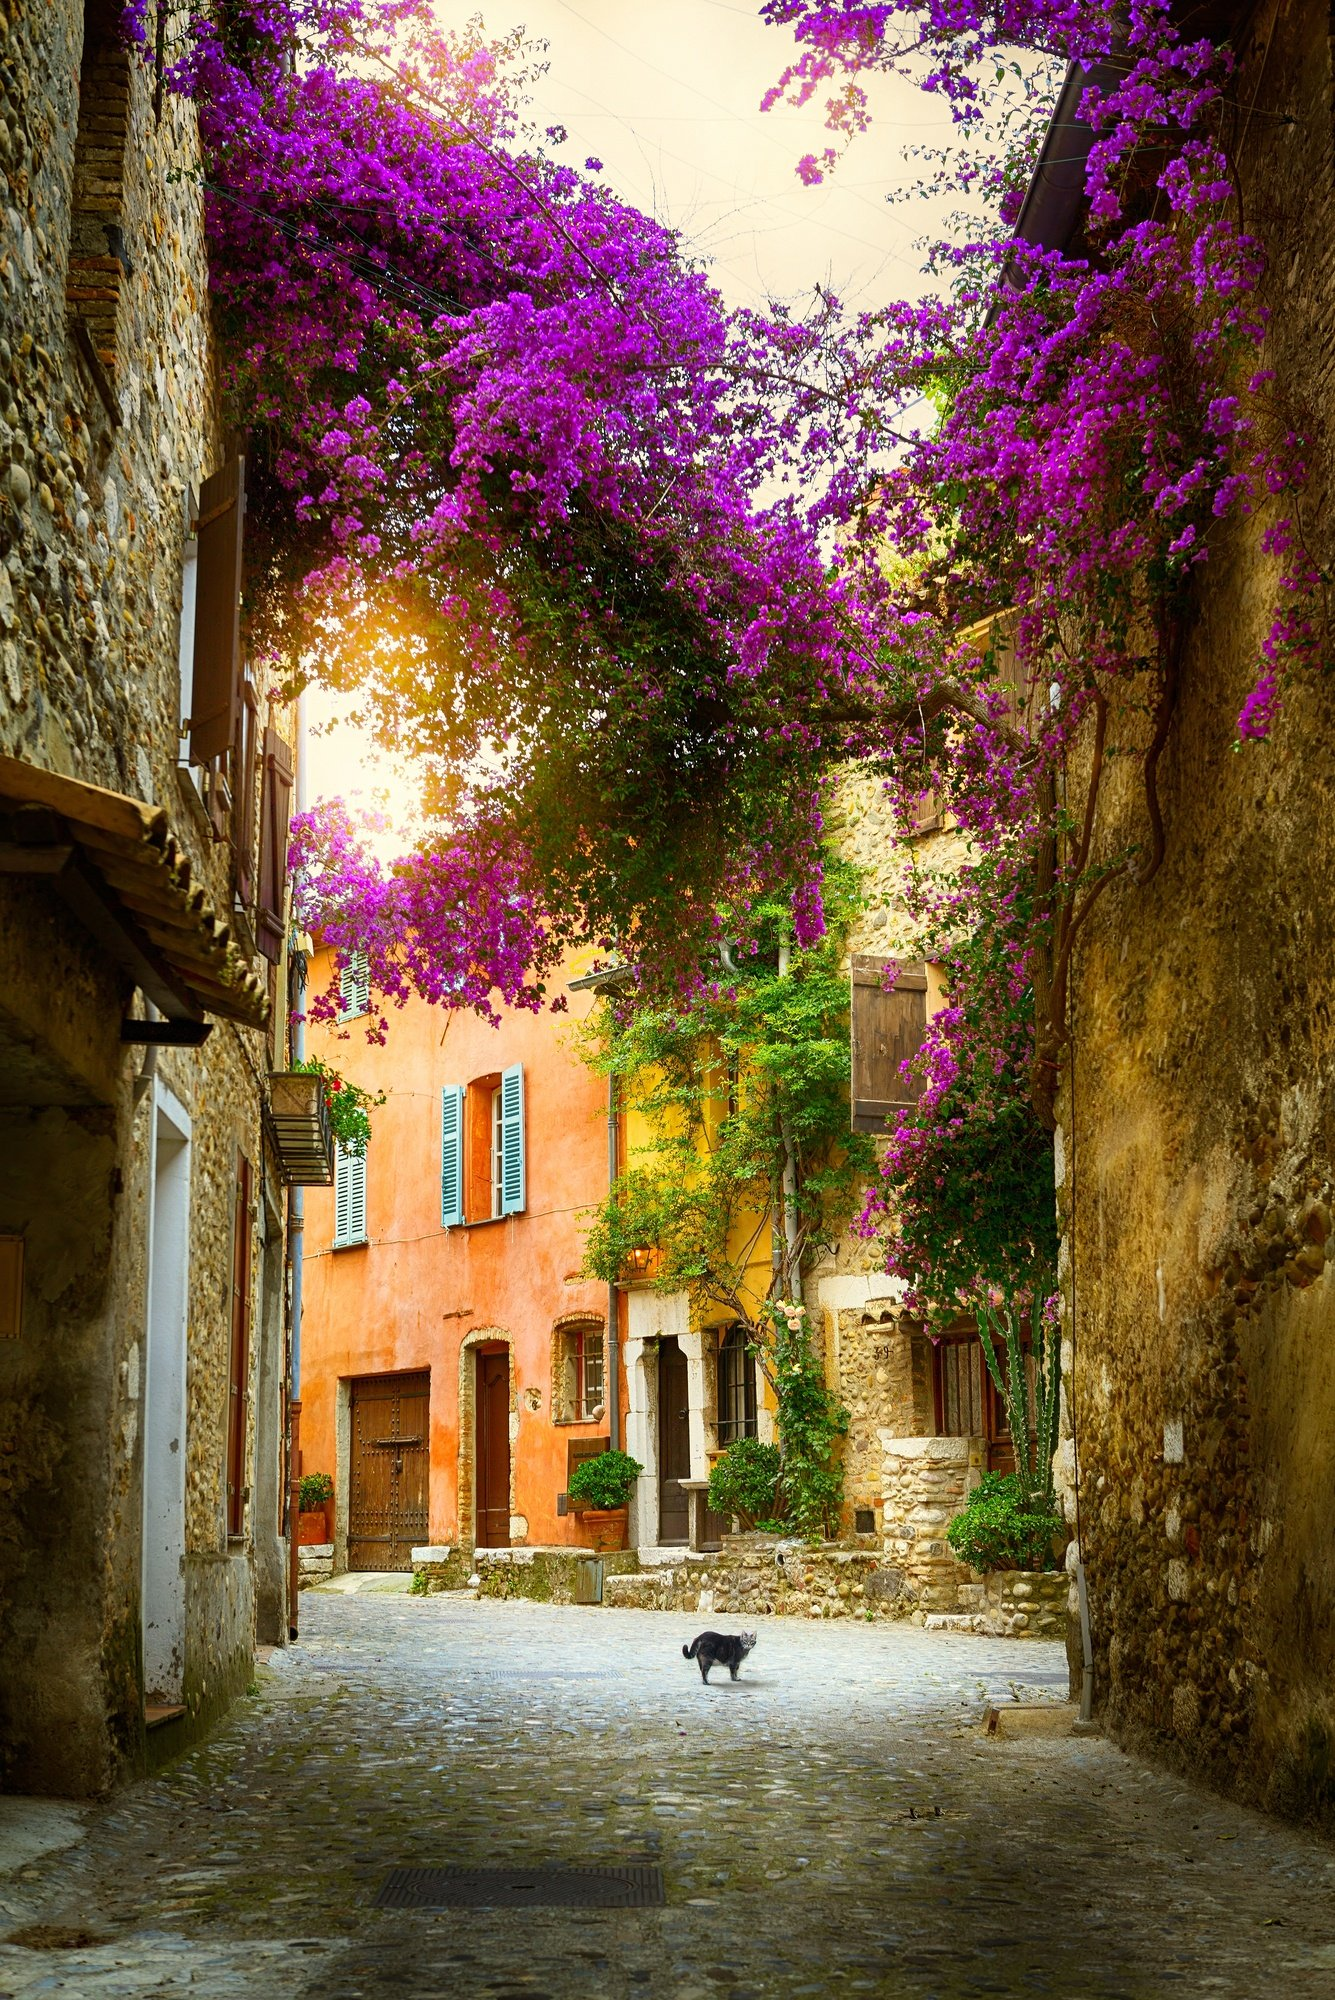 A beautiful street scene in Provence, France